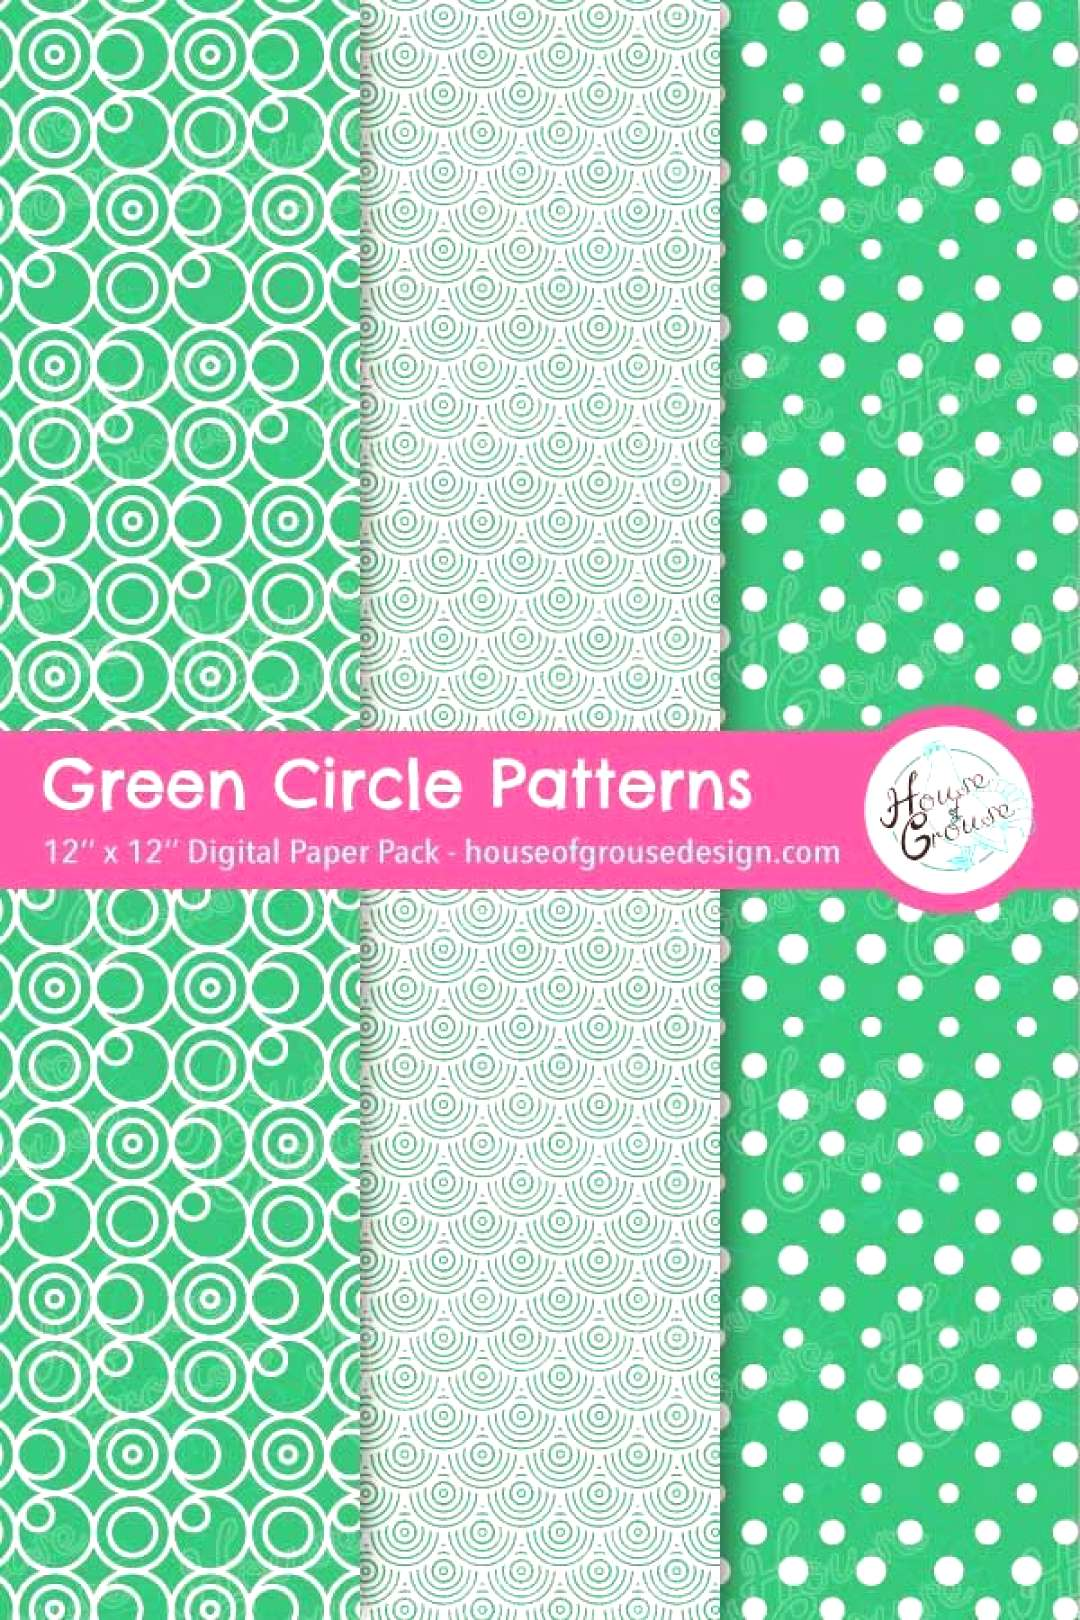 Green Circles Pattern Set Decorative printable backgrounds for scrapbooks, journals, diy greeting c